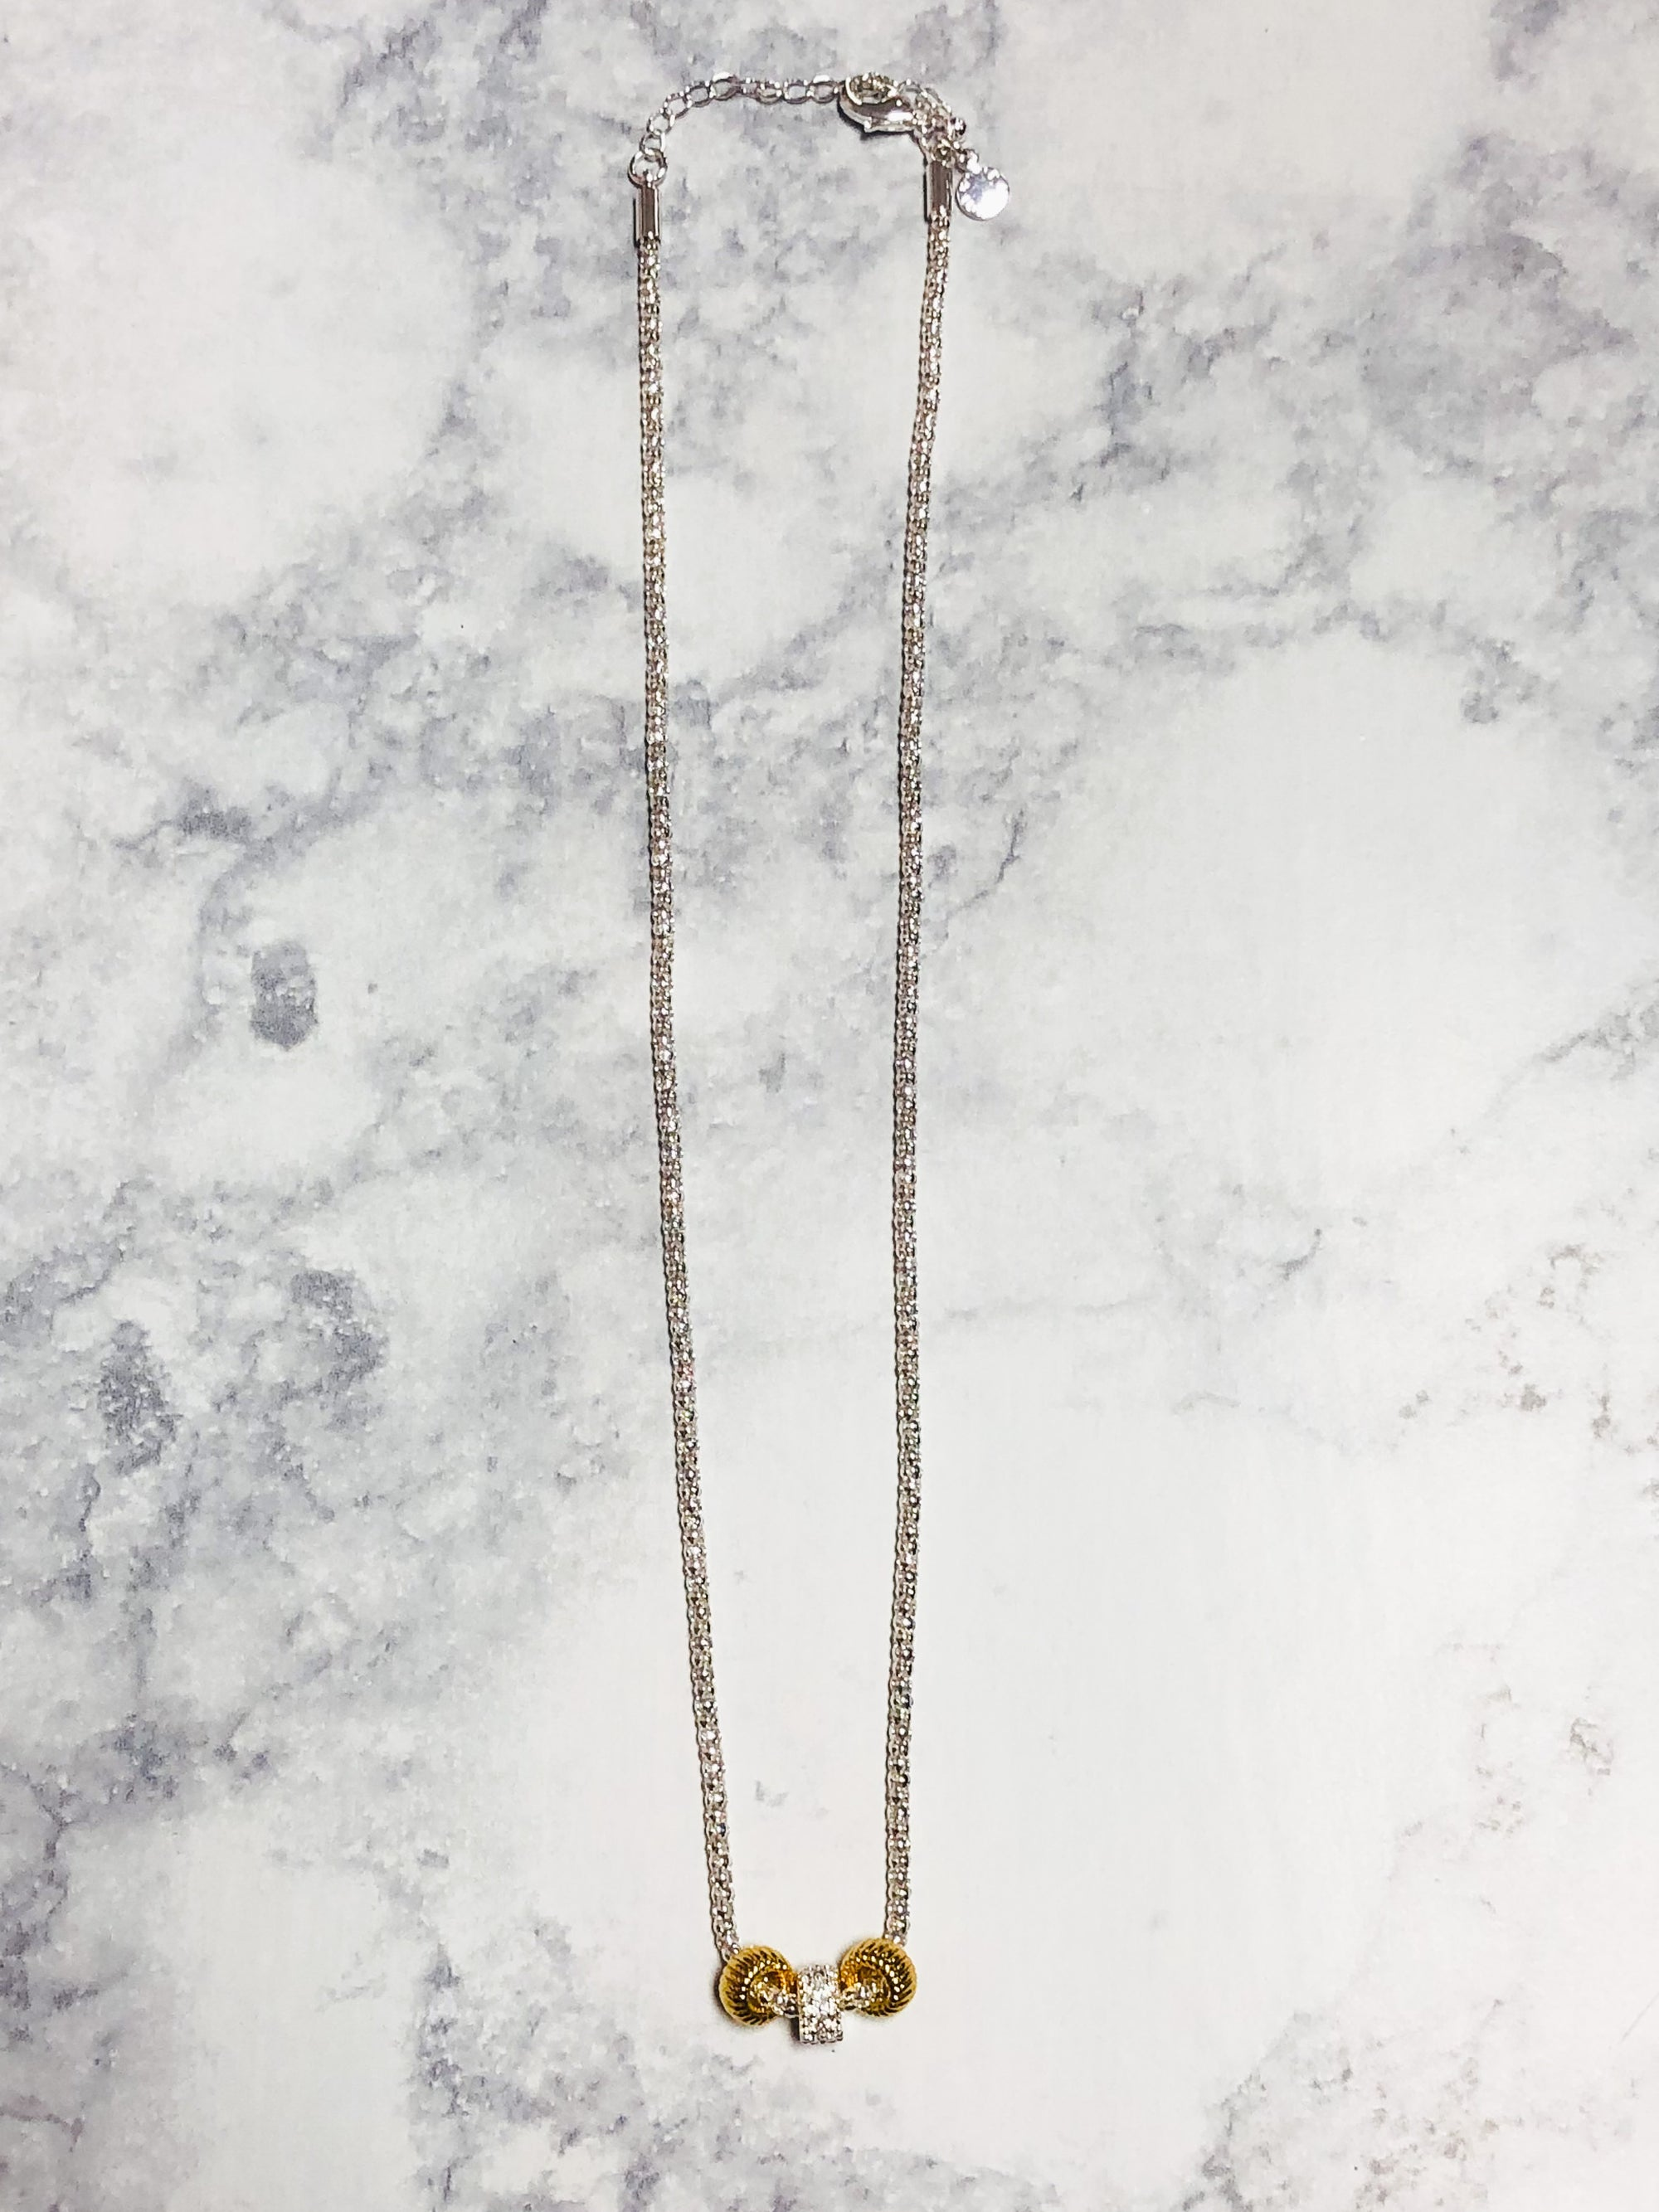 KL Halo Silver & Gold Necklace